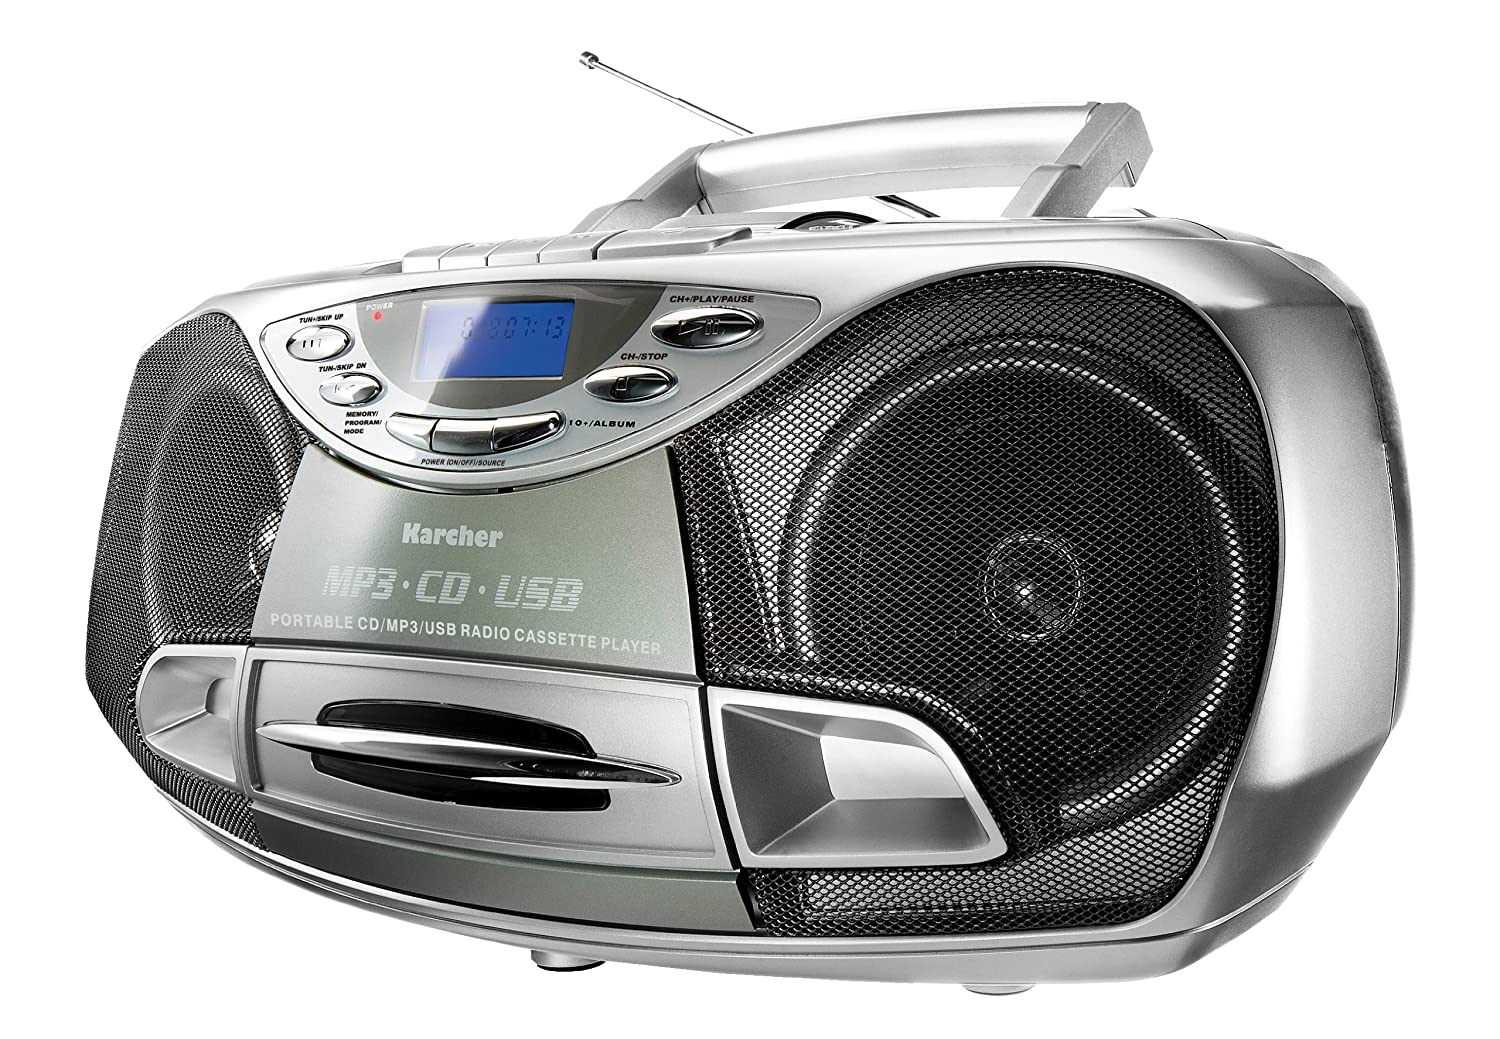 Media Markt Cd Player Tragbar Karcher Rr 510 N Boombox Stereoanlage Cd Mp3 Usb Pll